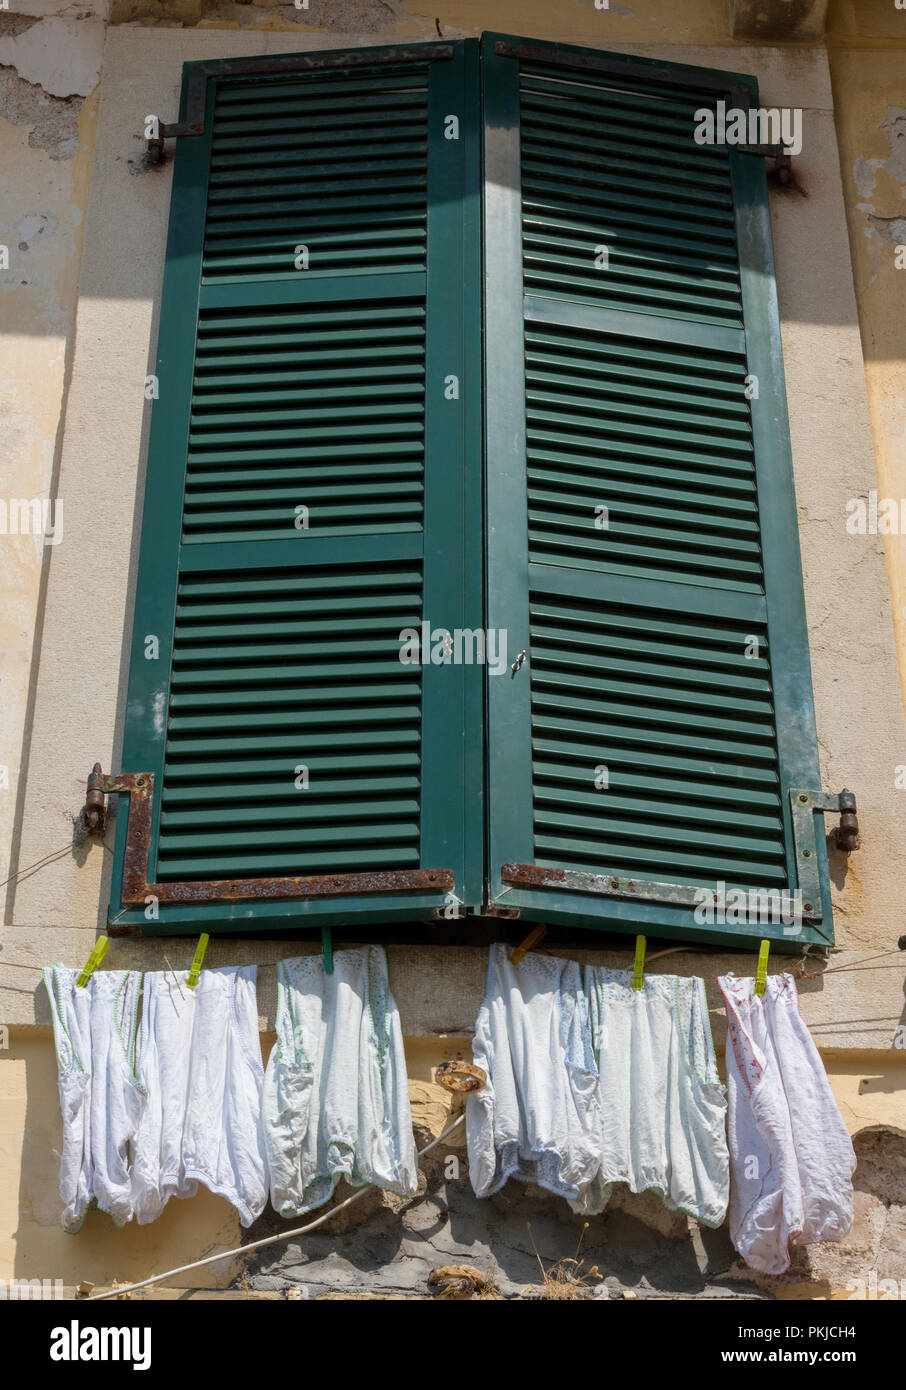 pairs of knickers and big pants hanging on a washing line below some green painted wodden shutters and a window in the old town of kerkyra on corfu. - Stock Image